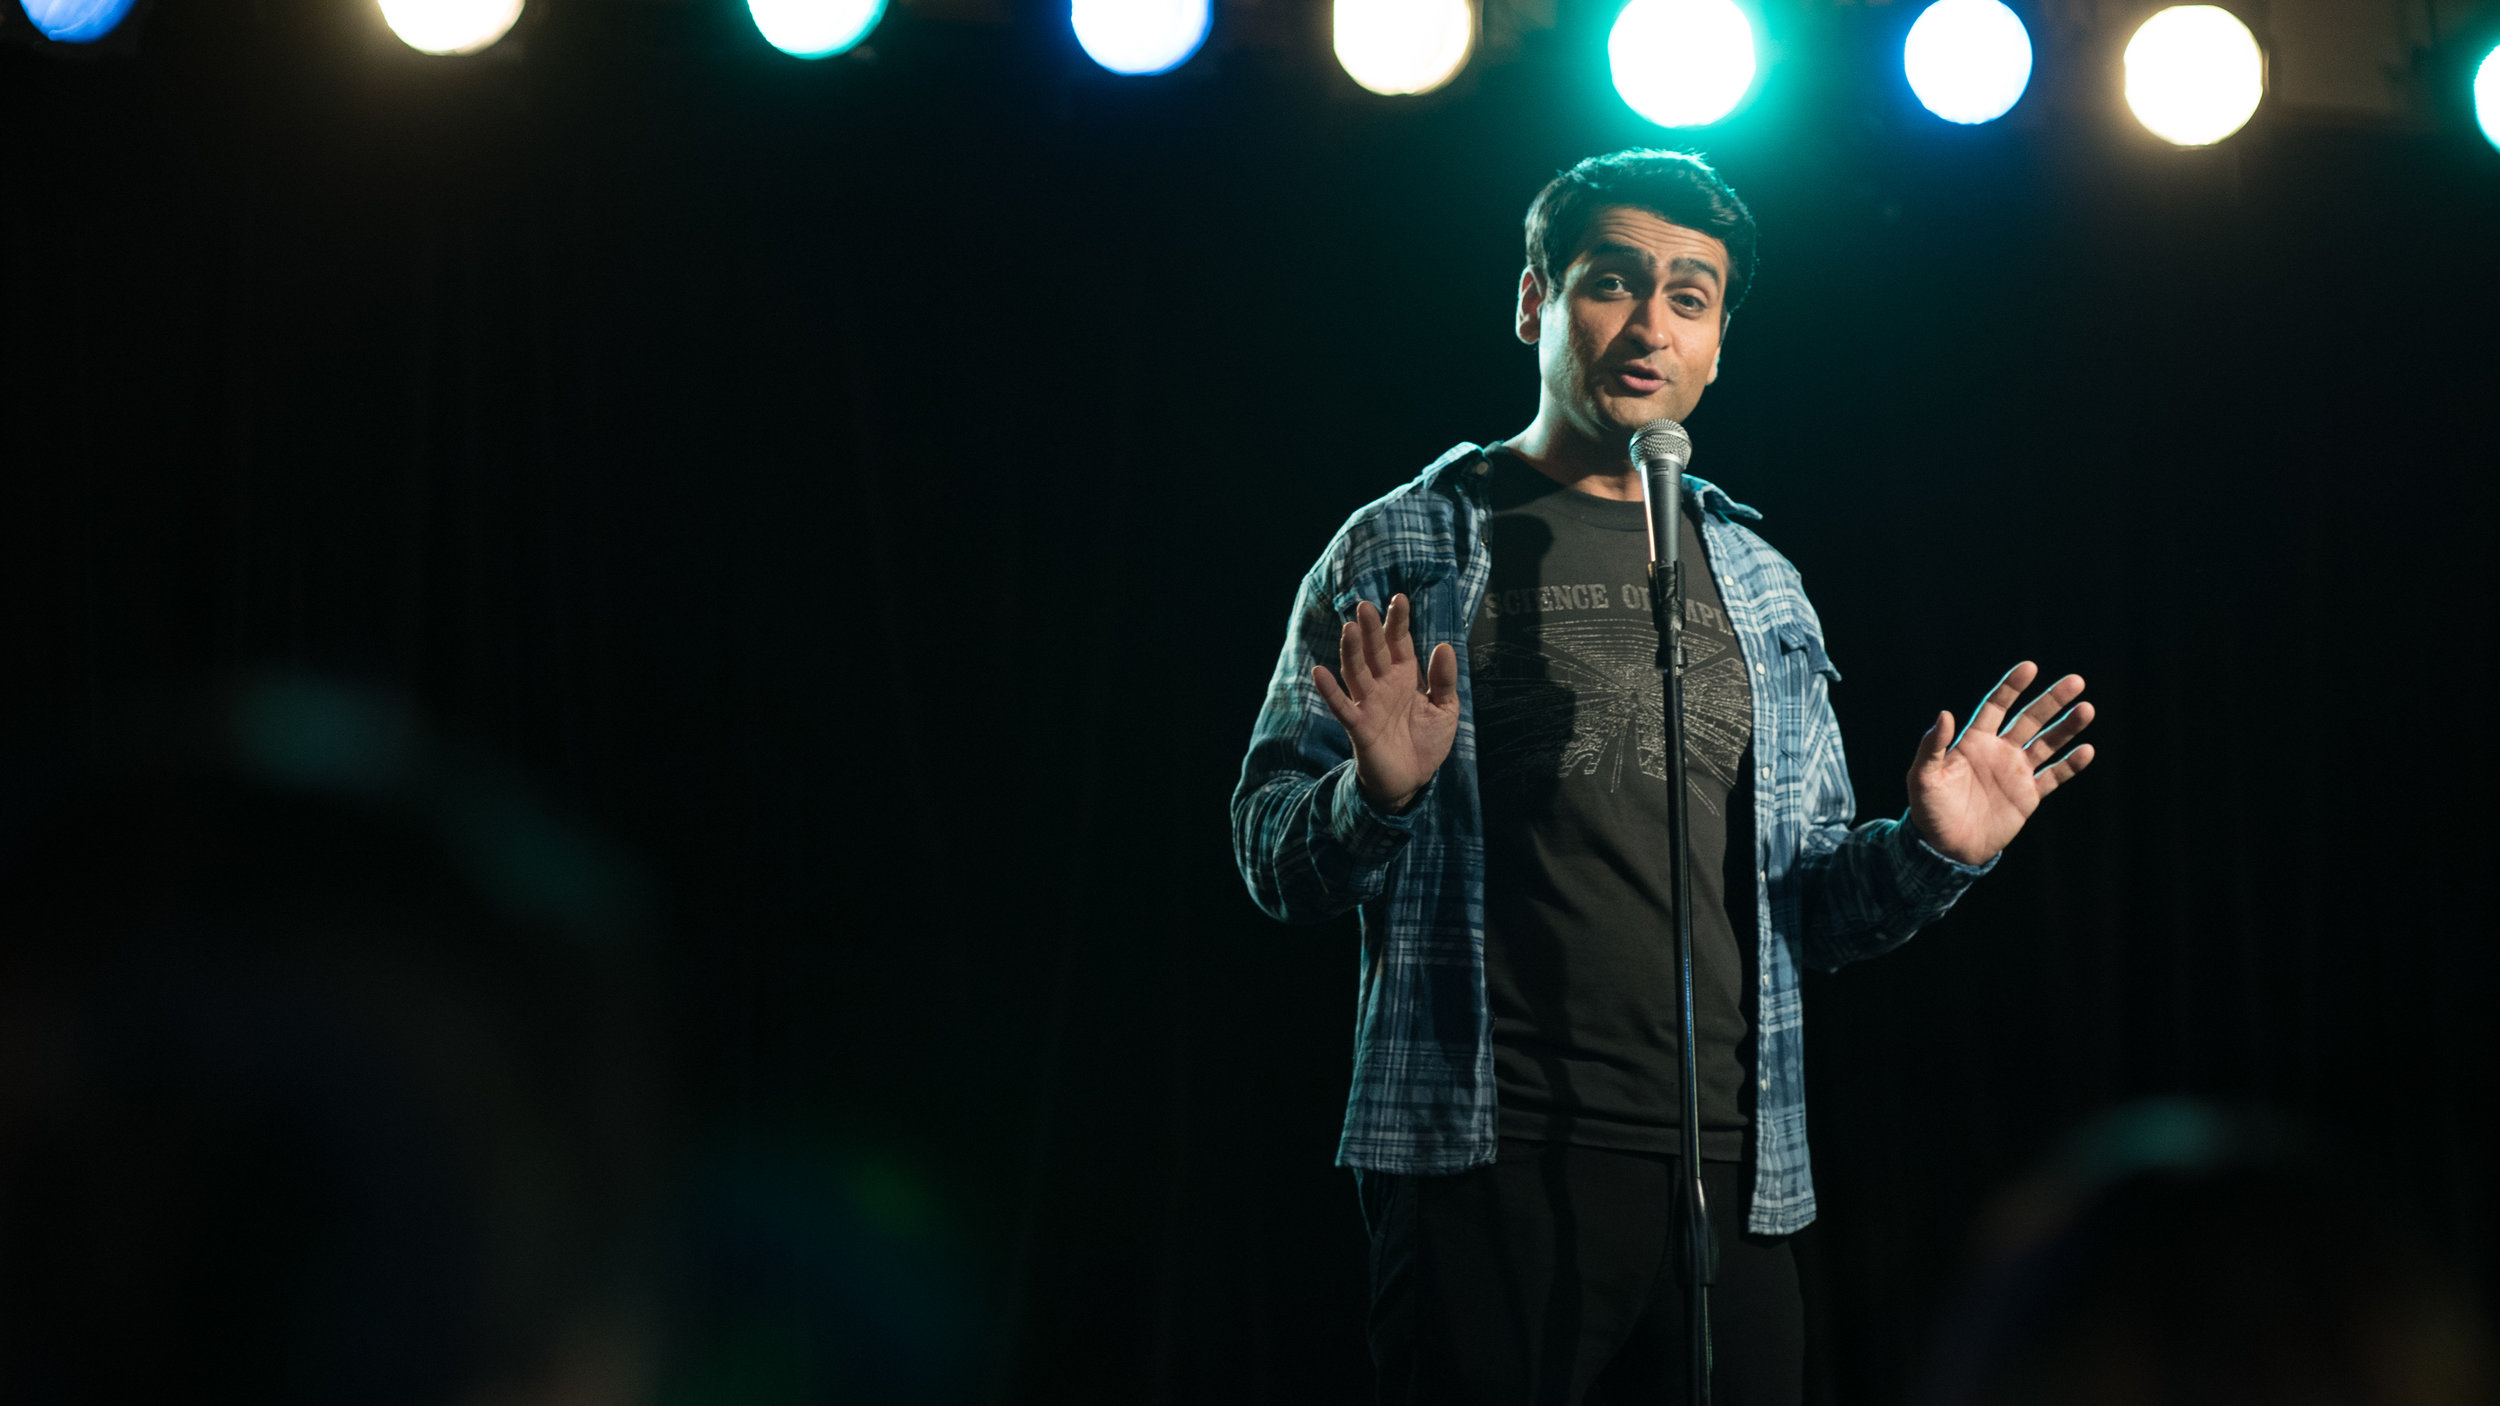 The Big Sick- Kumail performing